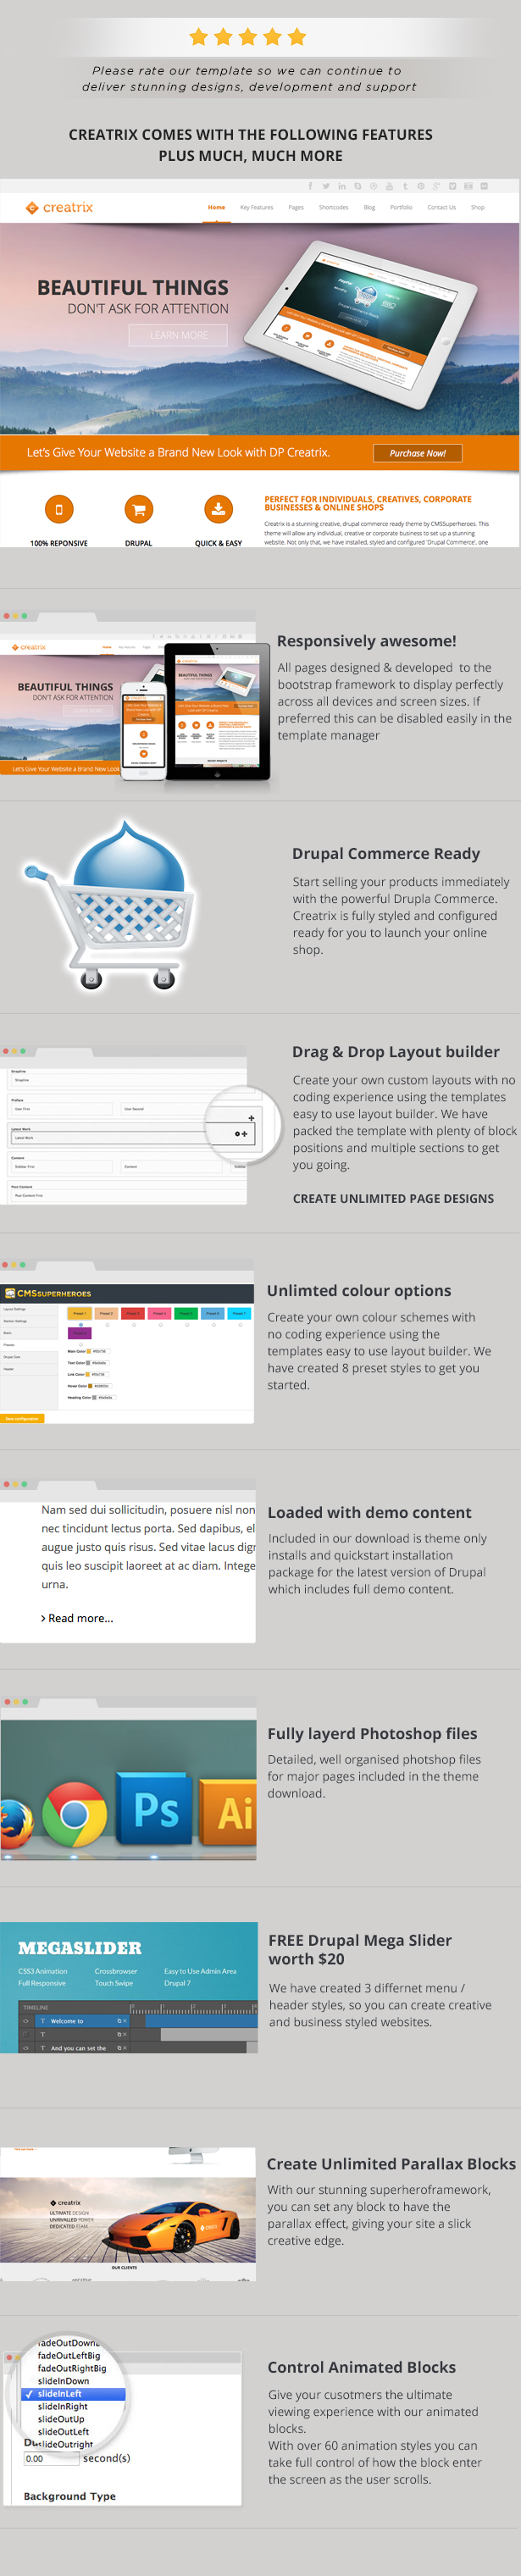 mainimage - Creatrix - Drupal Commerce, Multipurpose Theme